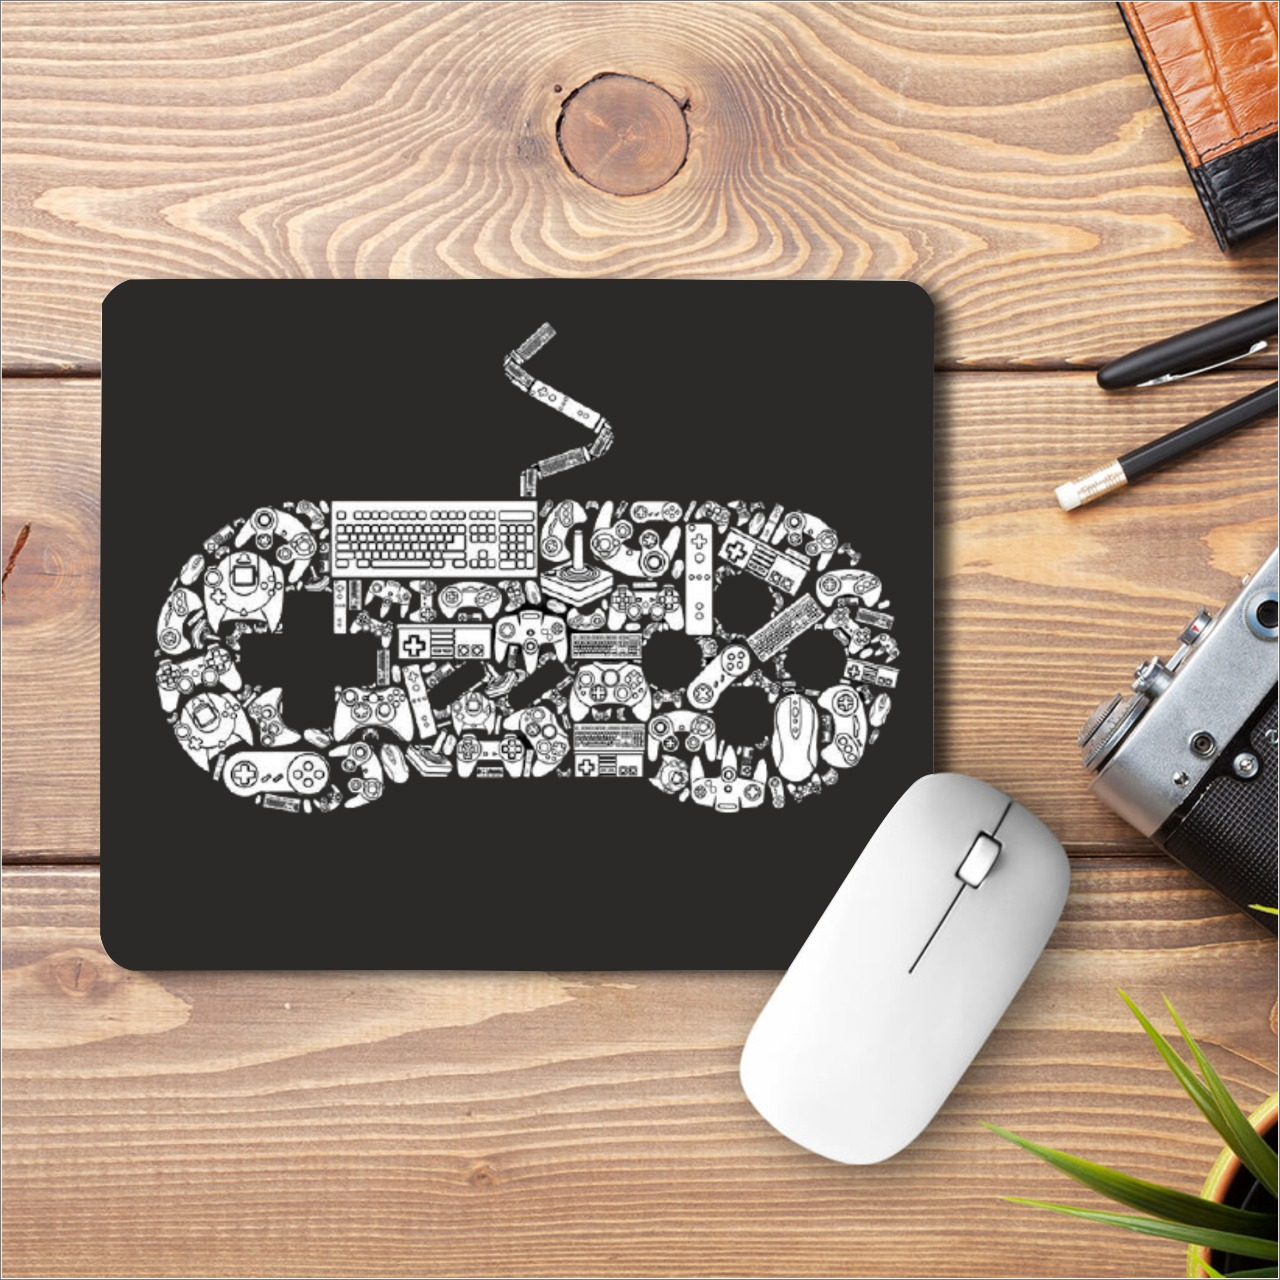 Gamepad Printed Mouse Pad|Gamepad Printed Mouse Pad|standard size 9 by 7 inch